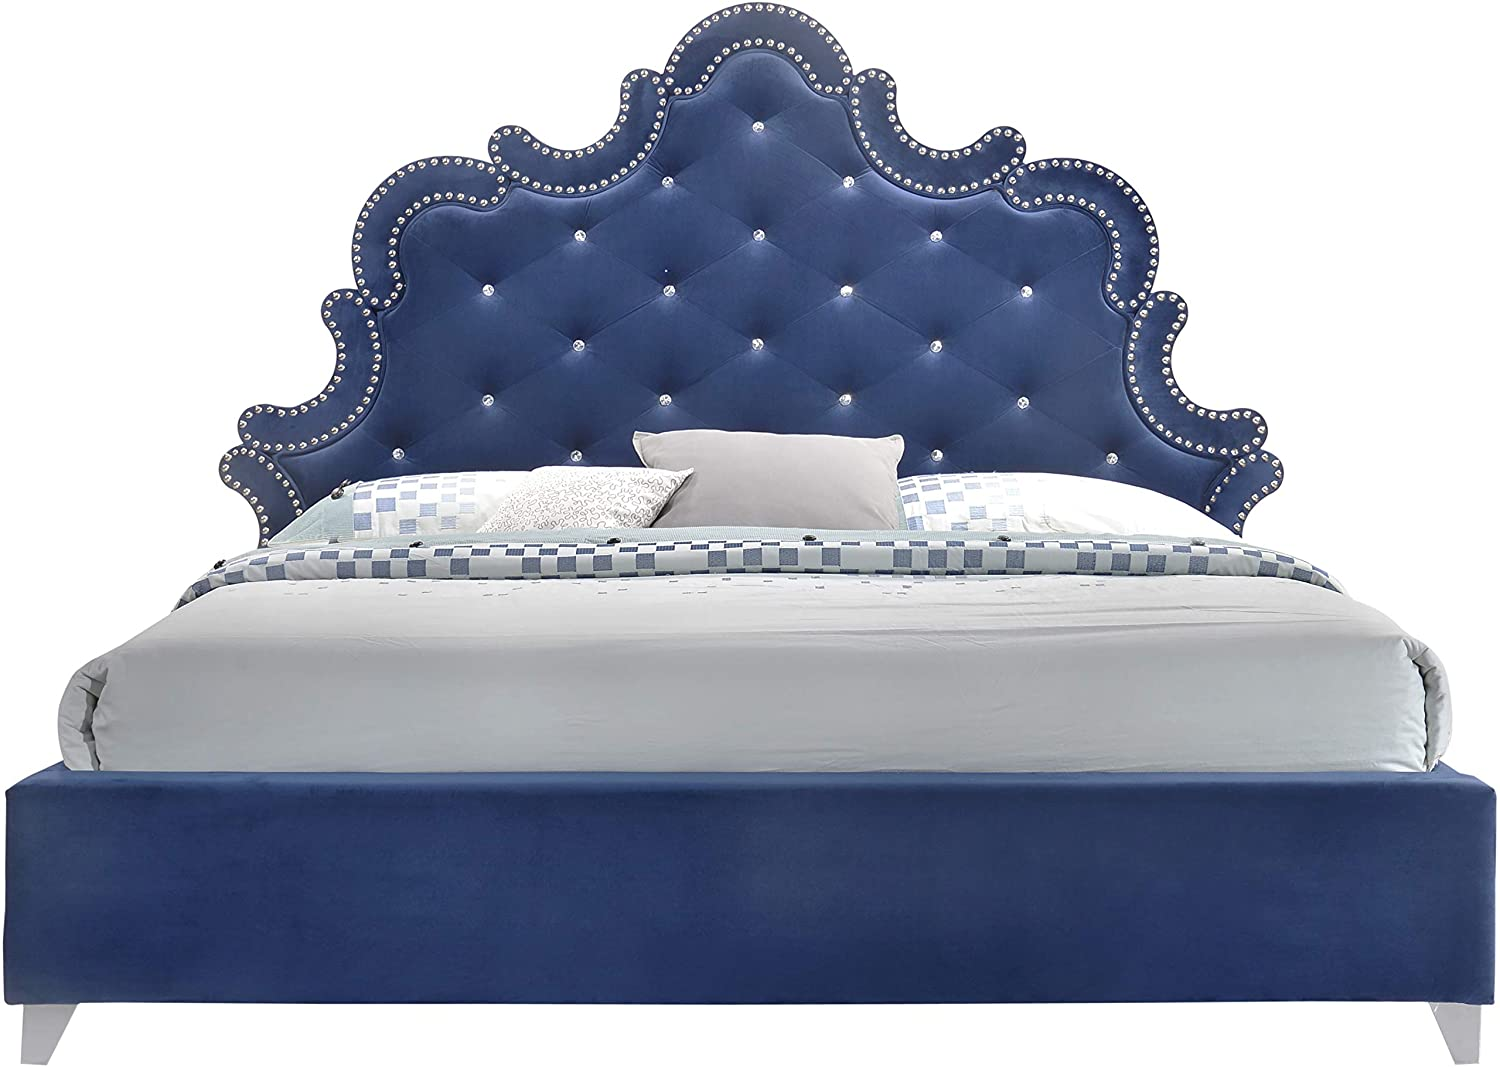 Meridian Furniture Caroline Velvet Upholstered Bed with Silver Nailhead Trim, Crystal Button Tufting, and Custom Chrome Legs, Queen, Navy